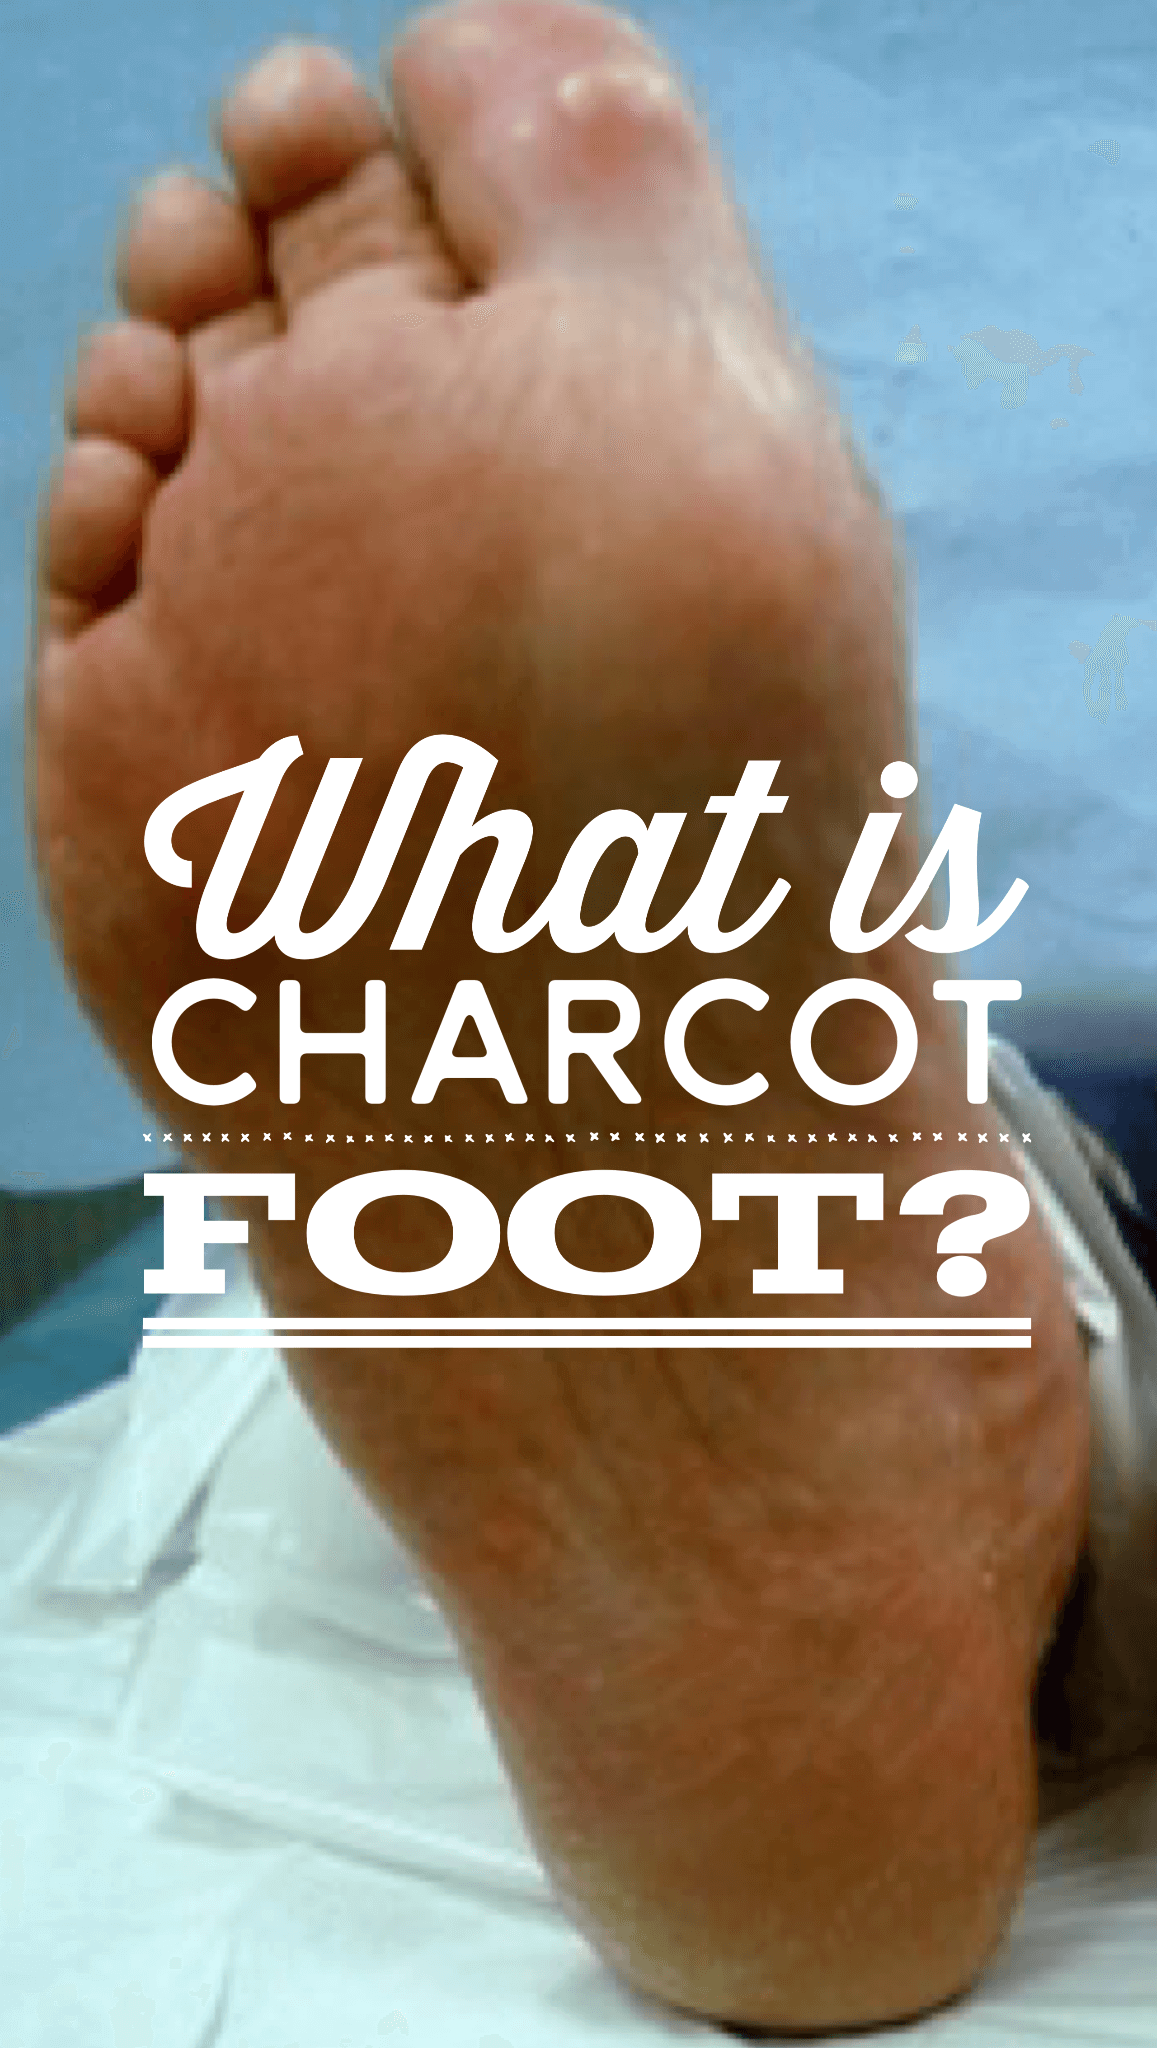 What is Charcot Arthropathy?  Charcot foot, as it is commonly referred to, is a chronic progressive disease of the bone and joints found in the feet and ankles of Charcot_Footour diabetic patients with peripheral neuropathy.